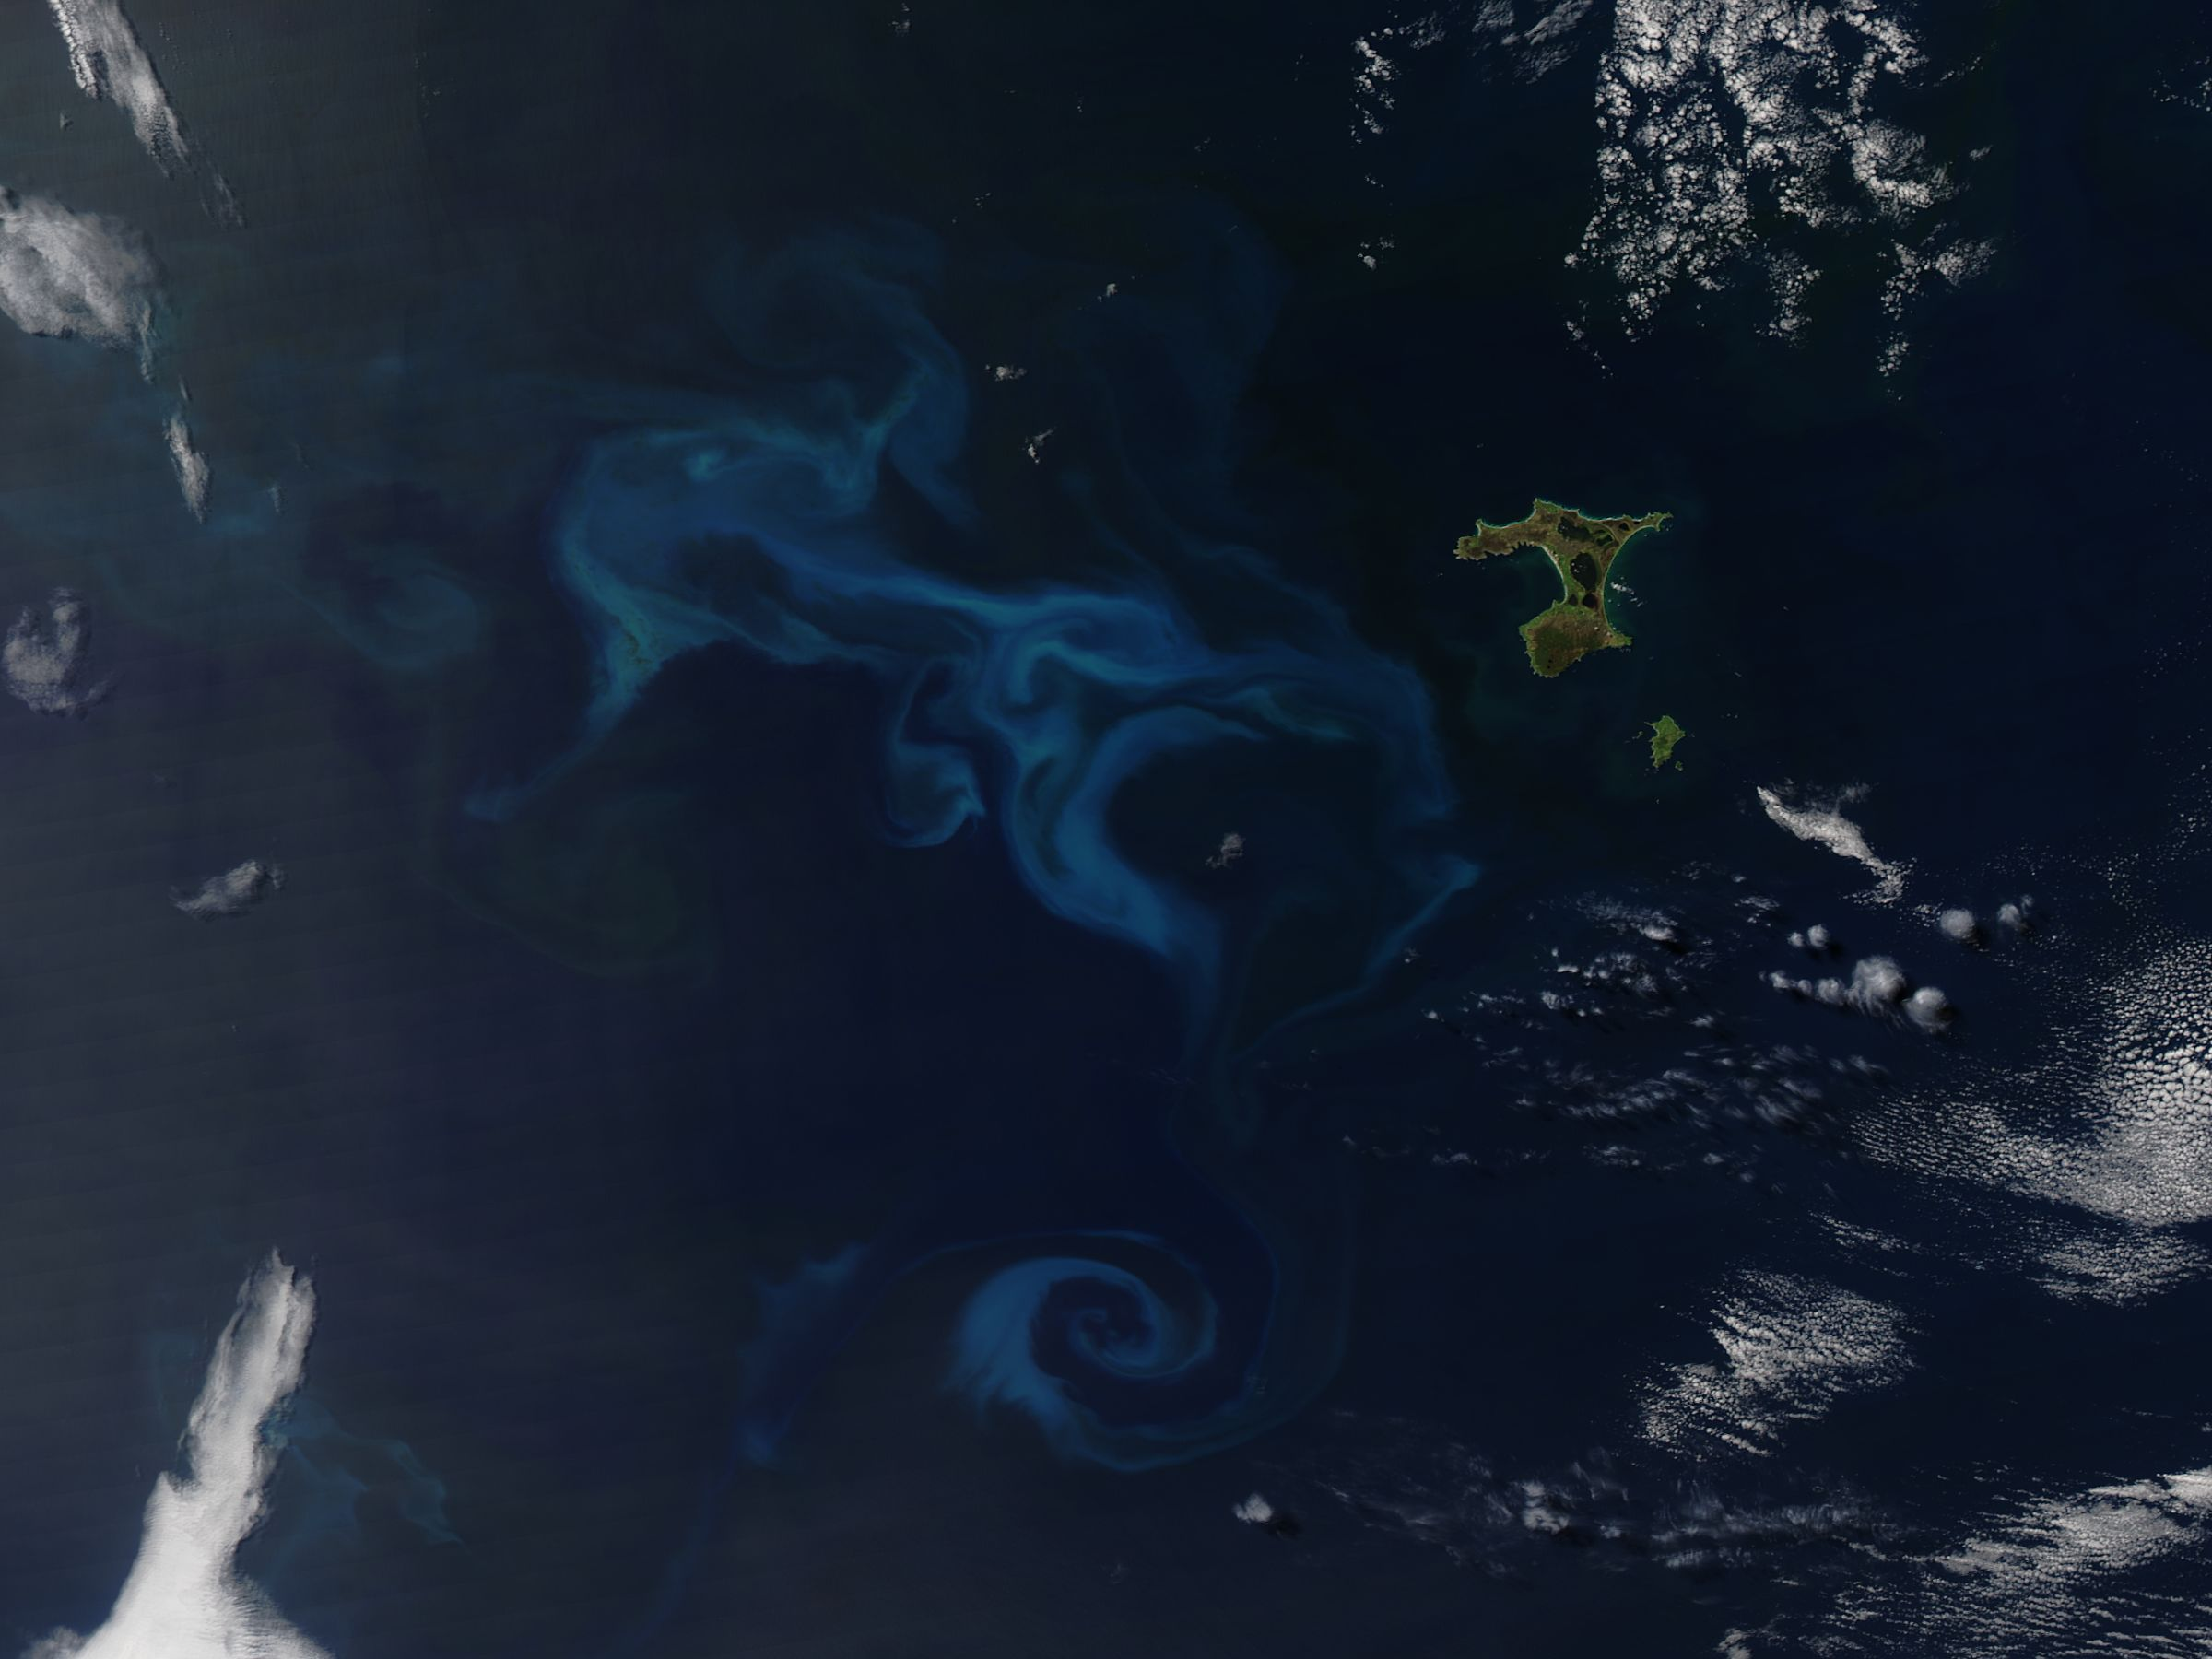 Phytoplankton bloom off Chatham Island, South Pacfic Ocean - related image preview